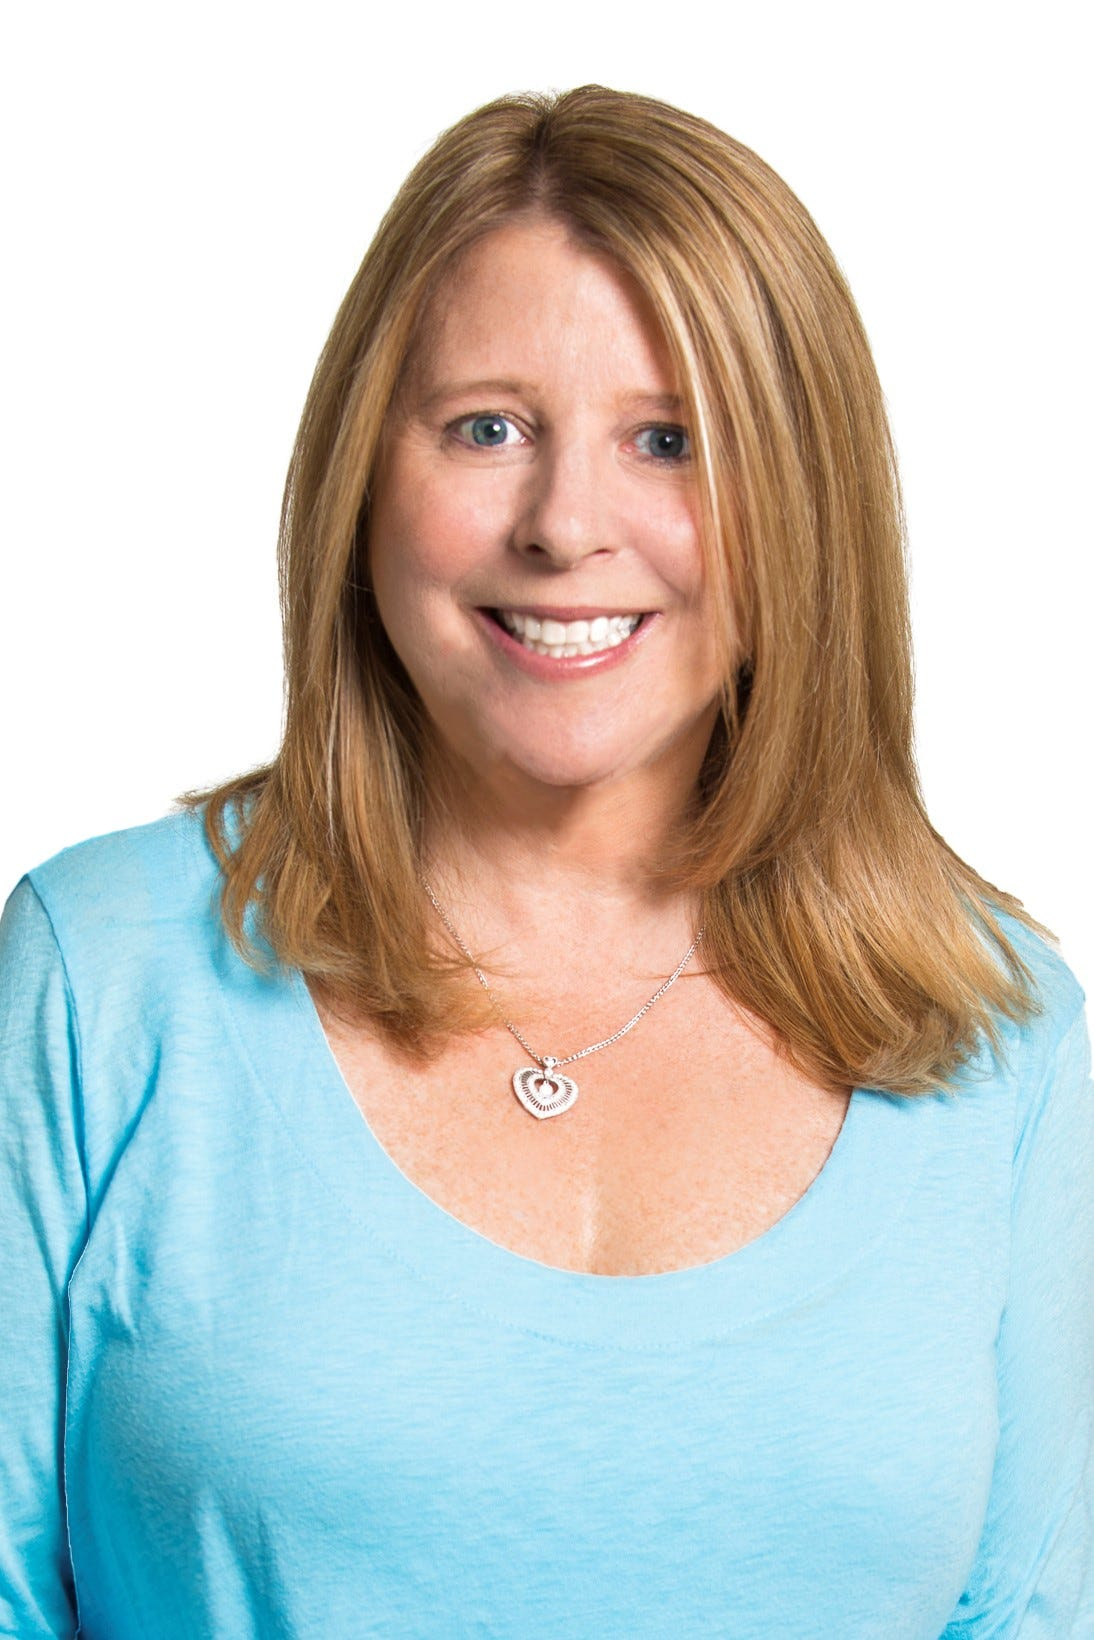 Stacy Levey, a real estate broker with William Raveis